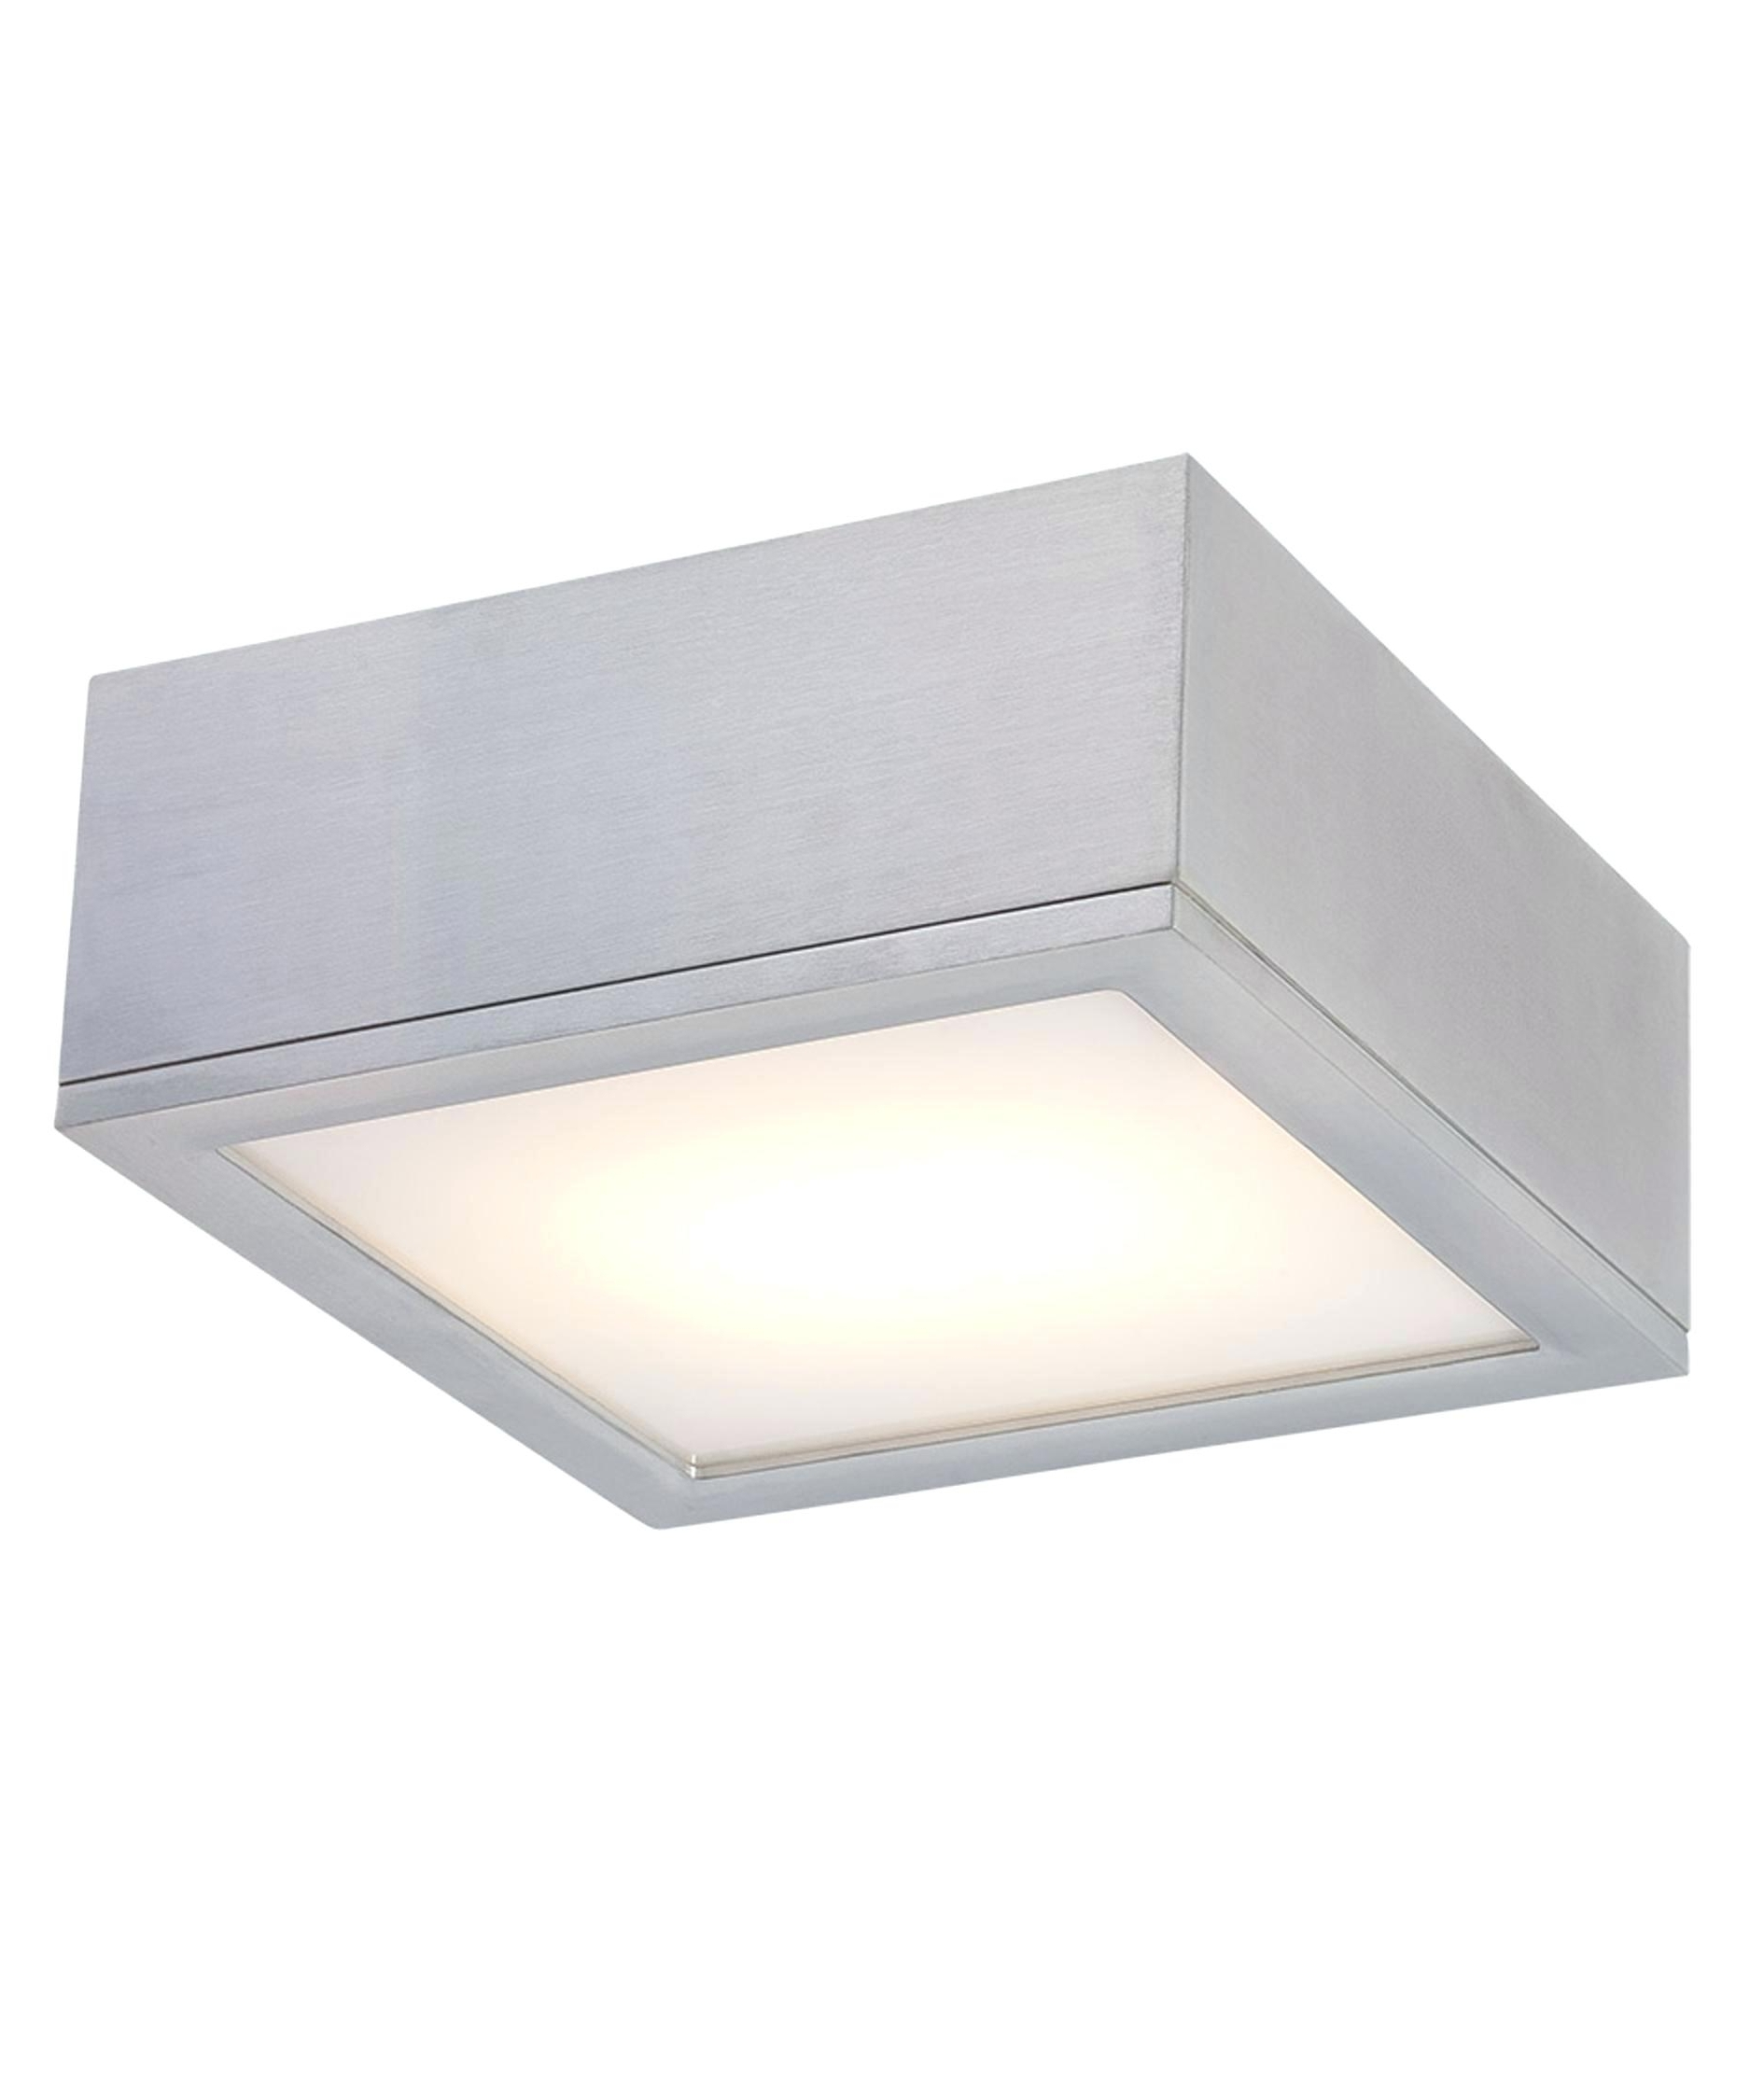 2019 Outdoor Ceiling Mounted Pir Light • Ceiling Lights With Regard To Outdoor Ceiling Lights With Pir (Gallery 20 of 20)